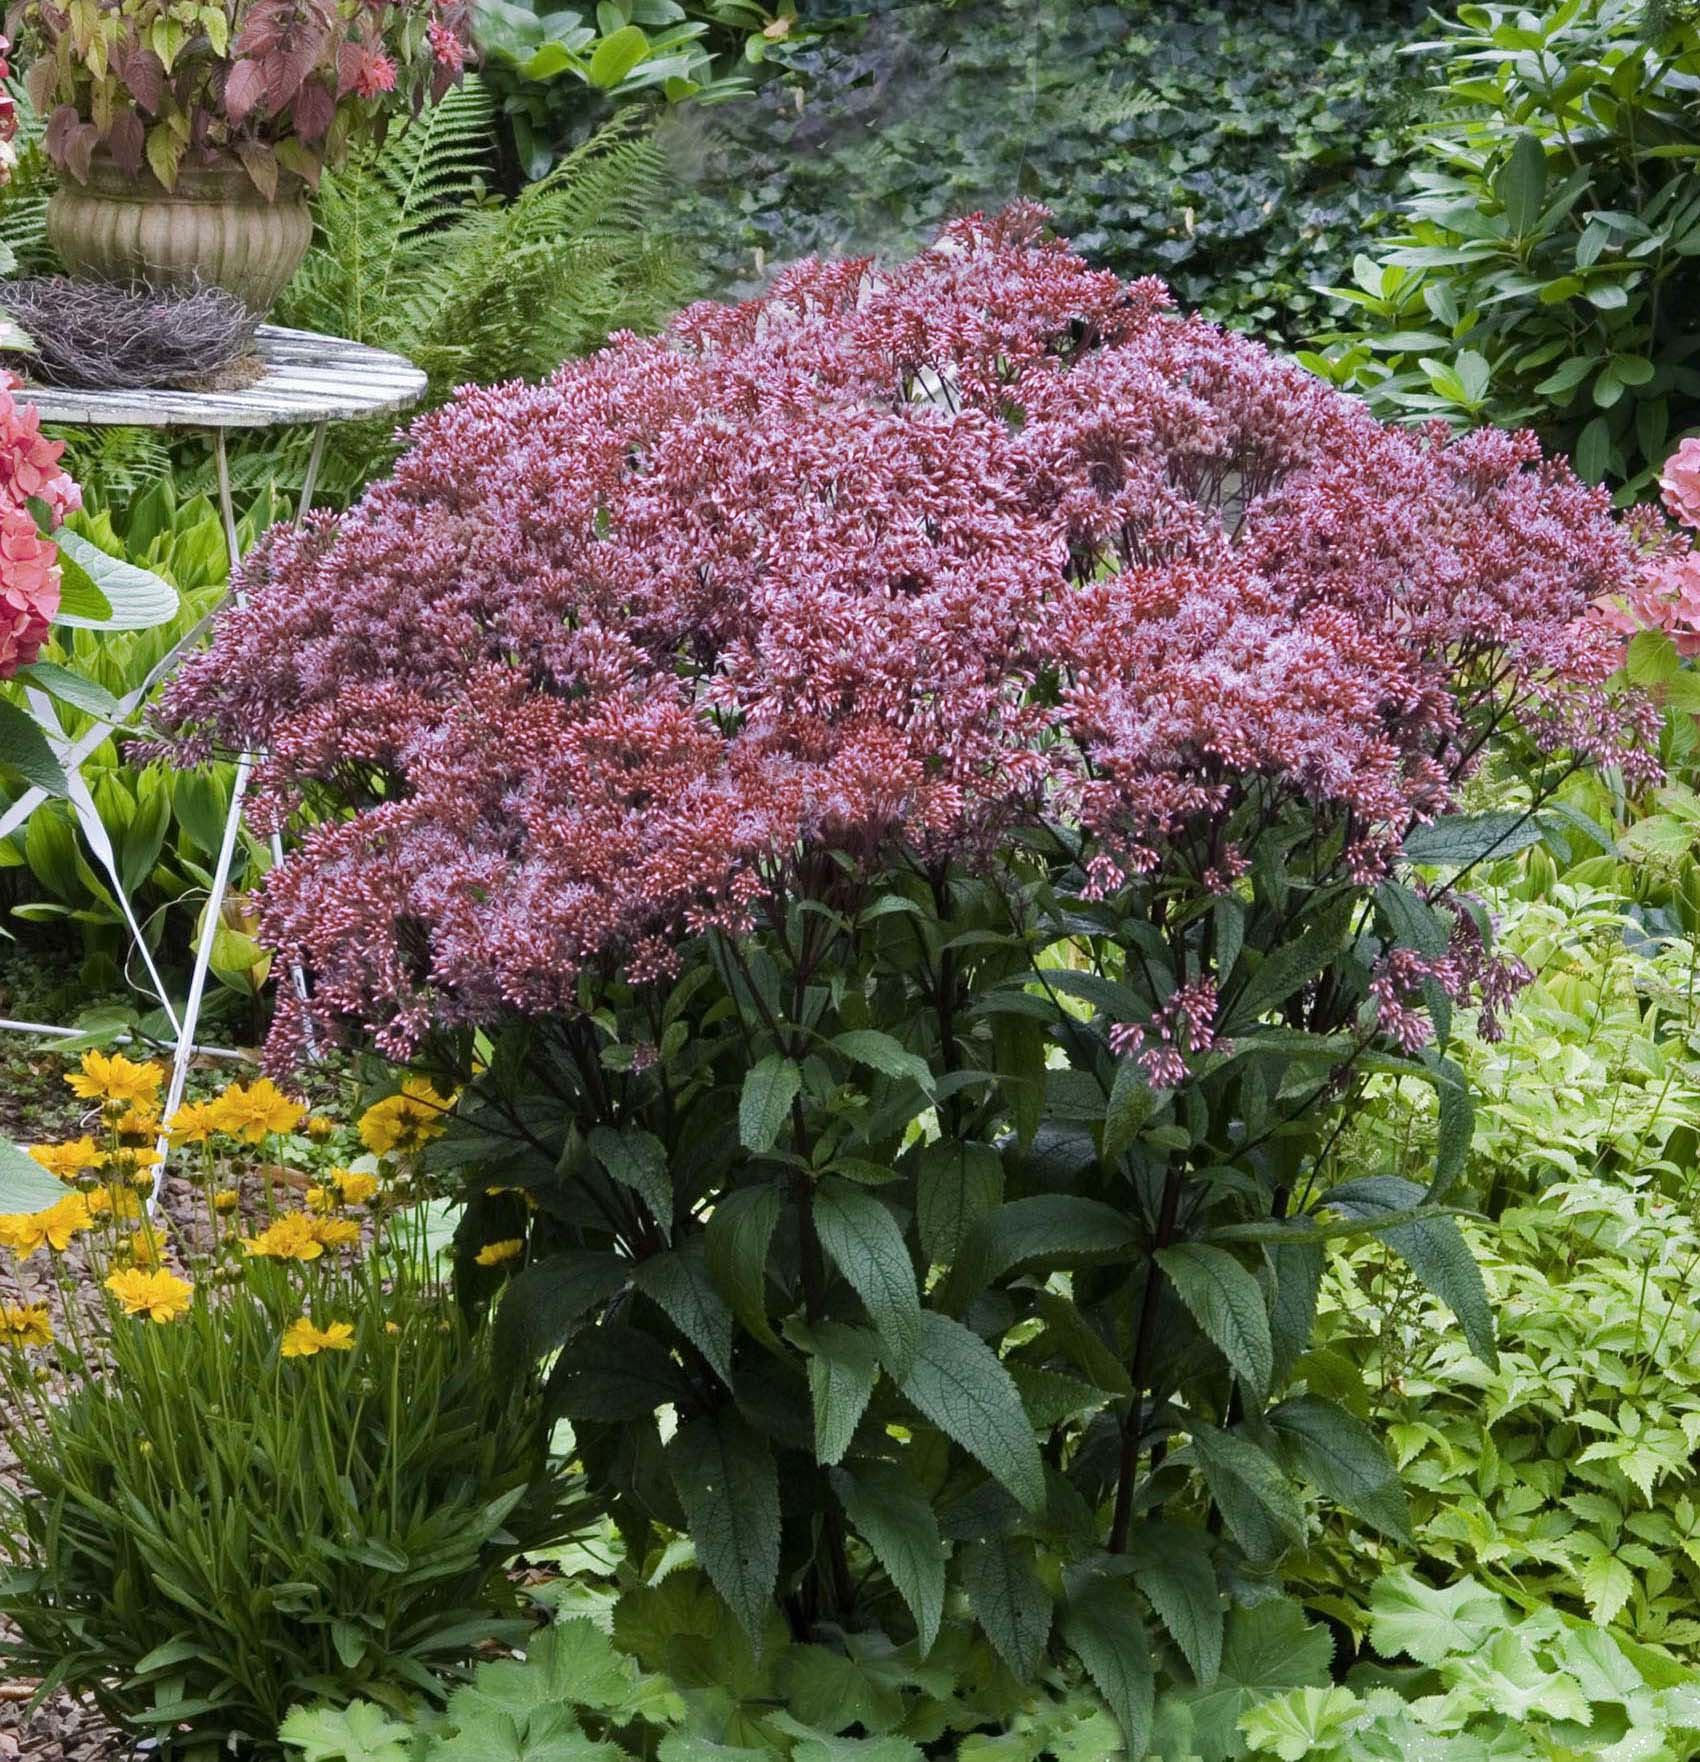 "Joe Pye Weed is making a play for fall favorite. It doesn't have to be 6' tall and floppinng in the garden. This one is 'Baby Joe' that stays 36"" tall and more compact."